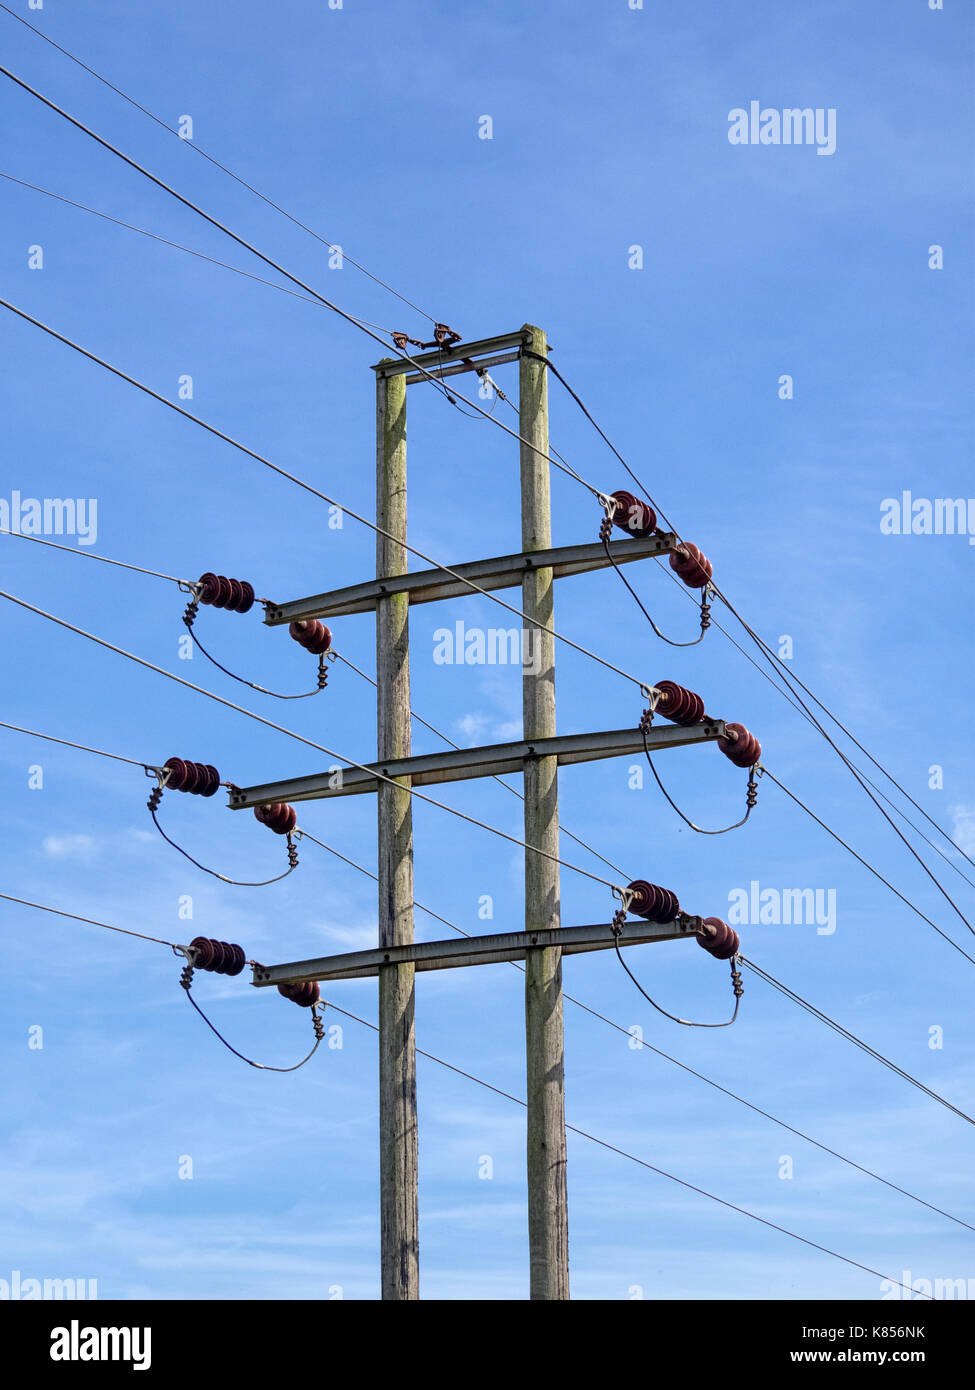 ELECTRICITY POWER PYLON:  Seen against Blue Sky - Stock Image